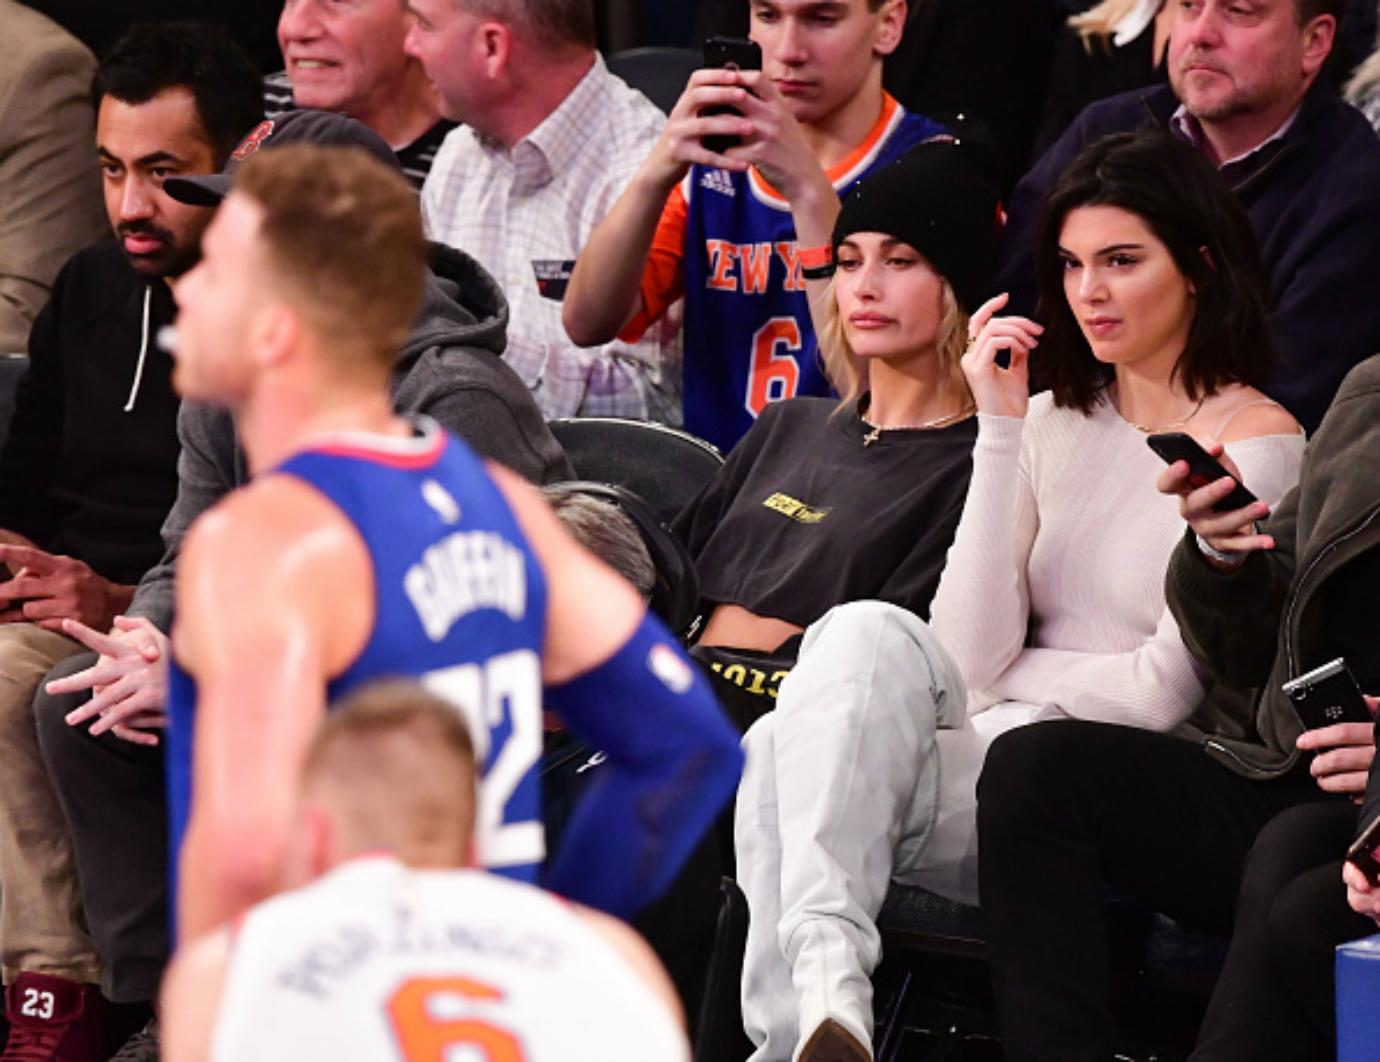 Kendall Jenner sits courtside cheering on Blake Griffin.